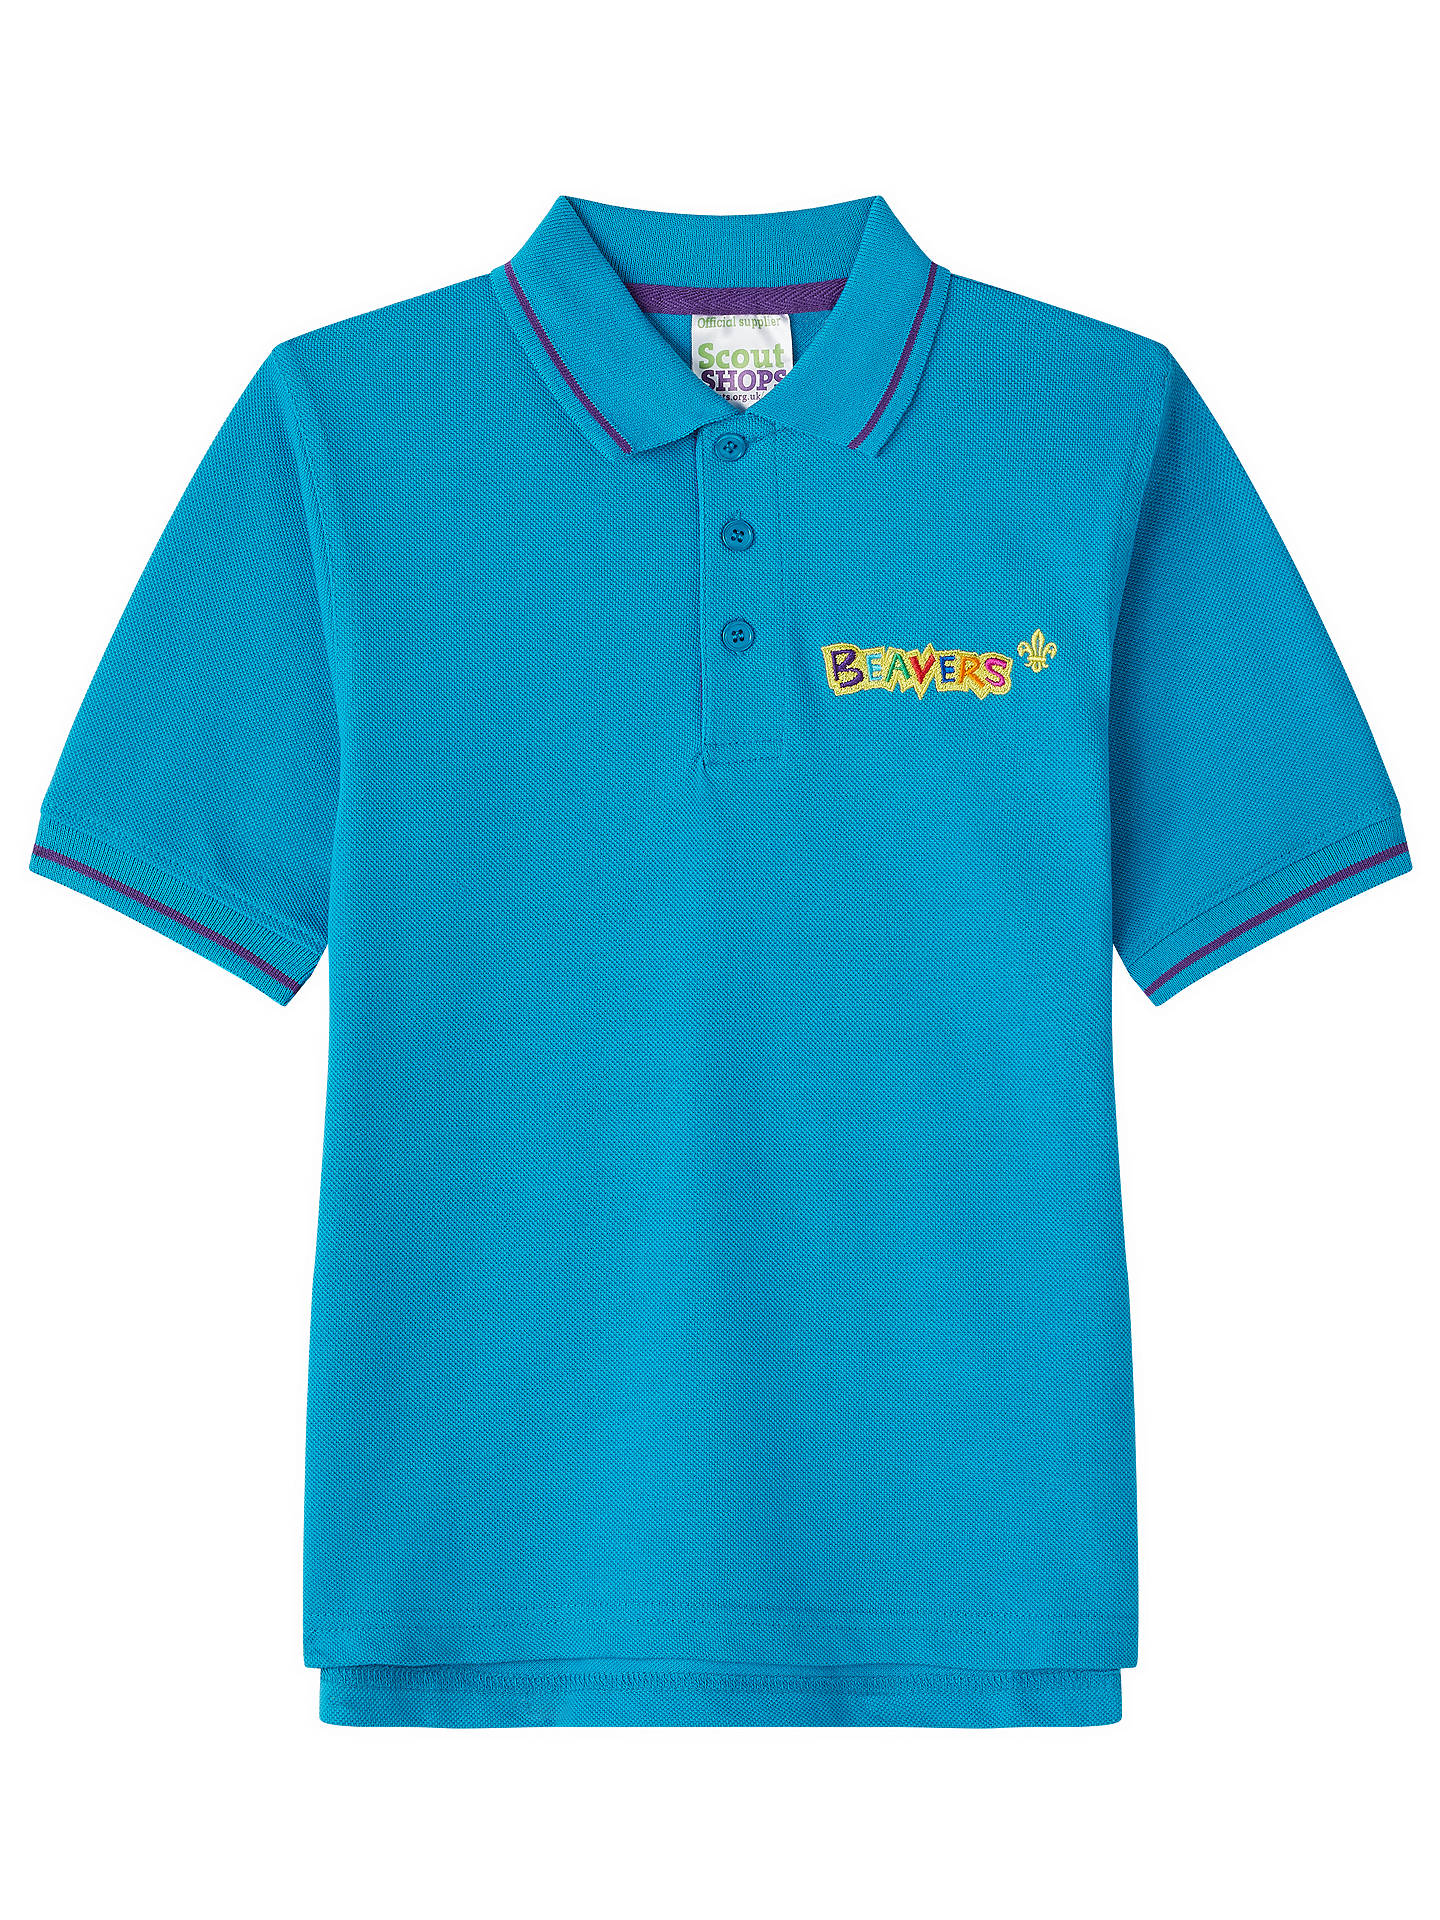 BuyBeavers Uniform Polo Shirt, Blue, Chest 28 Online at johnlewis.com